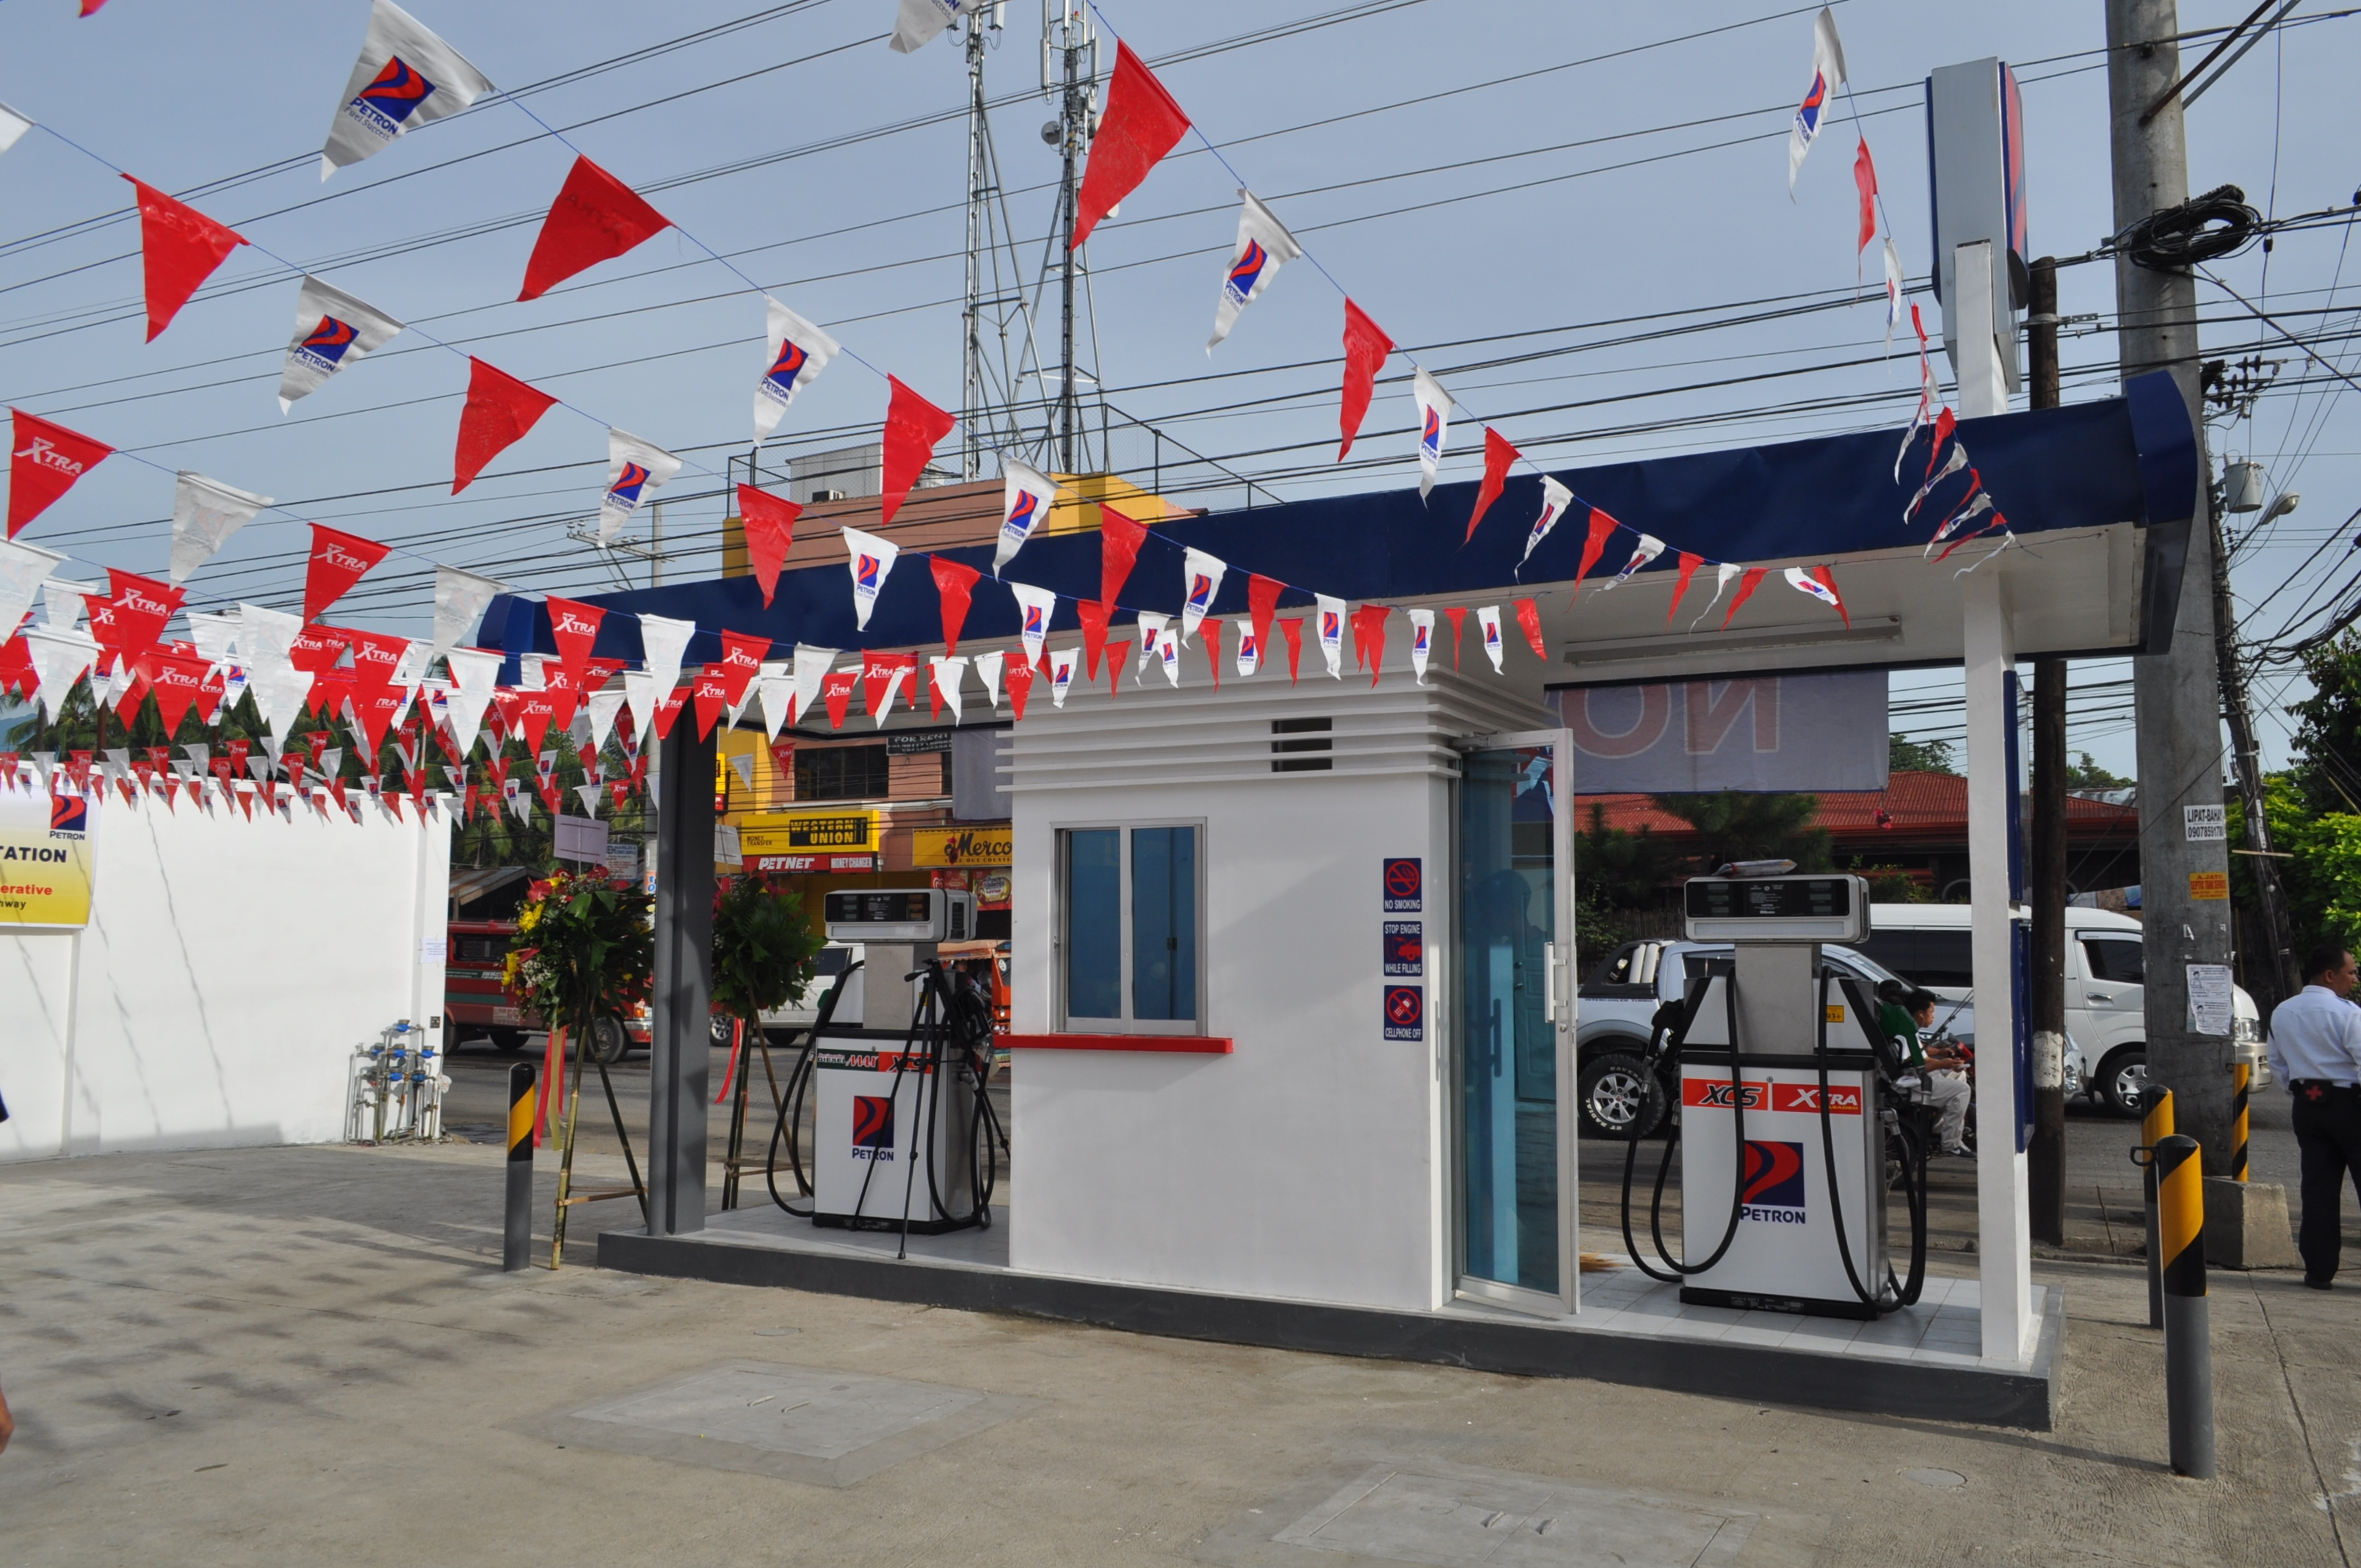 Petron Bulilit Gas Station at Crossing Talomo is now open! Two service pumps available.